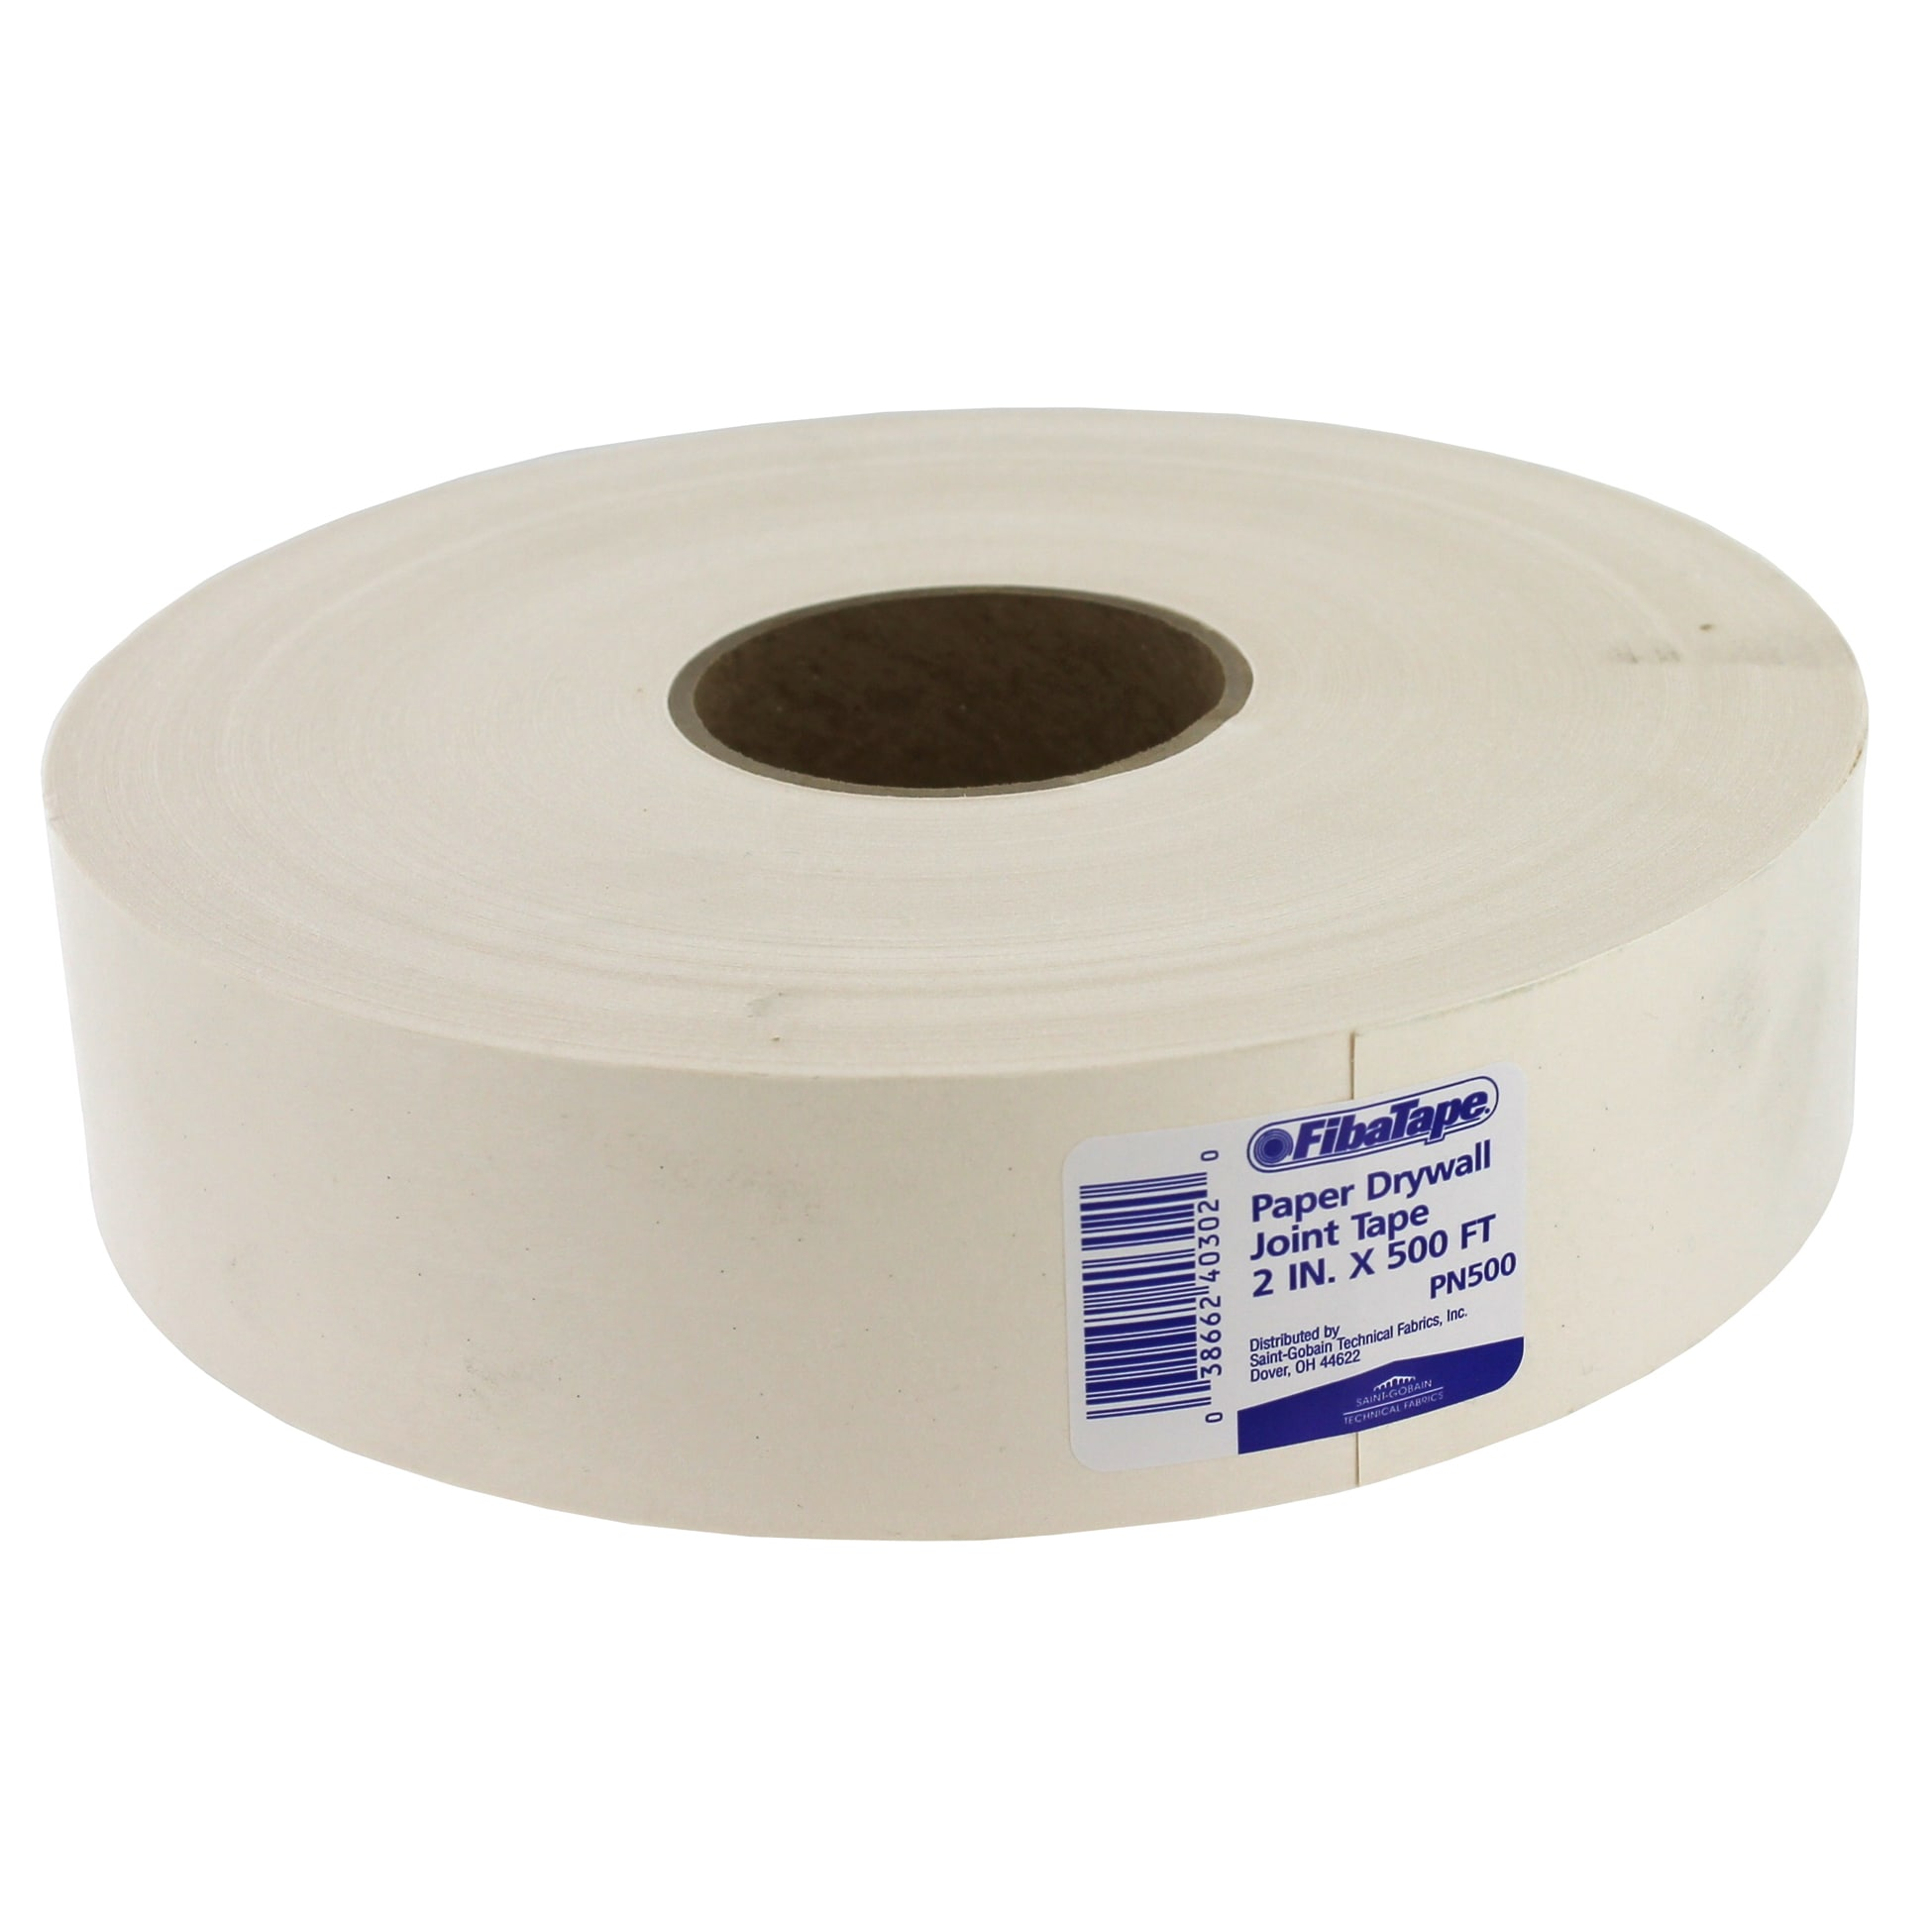 Drywall Paper Tape Details About Saint Gobain Fdw6619 U 2 Inch X 500 Foot Paper Joint Drywall Tape